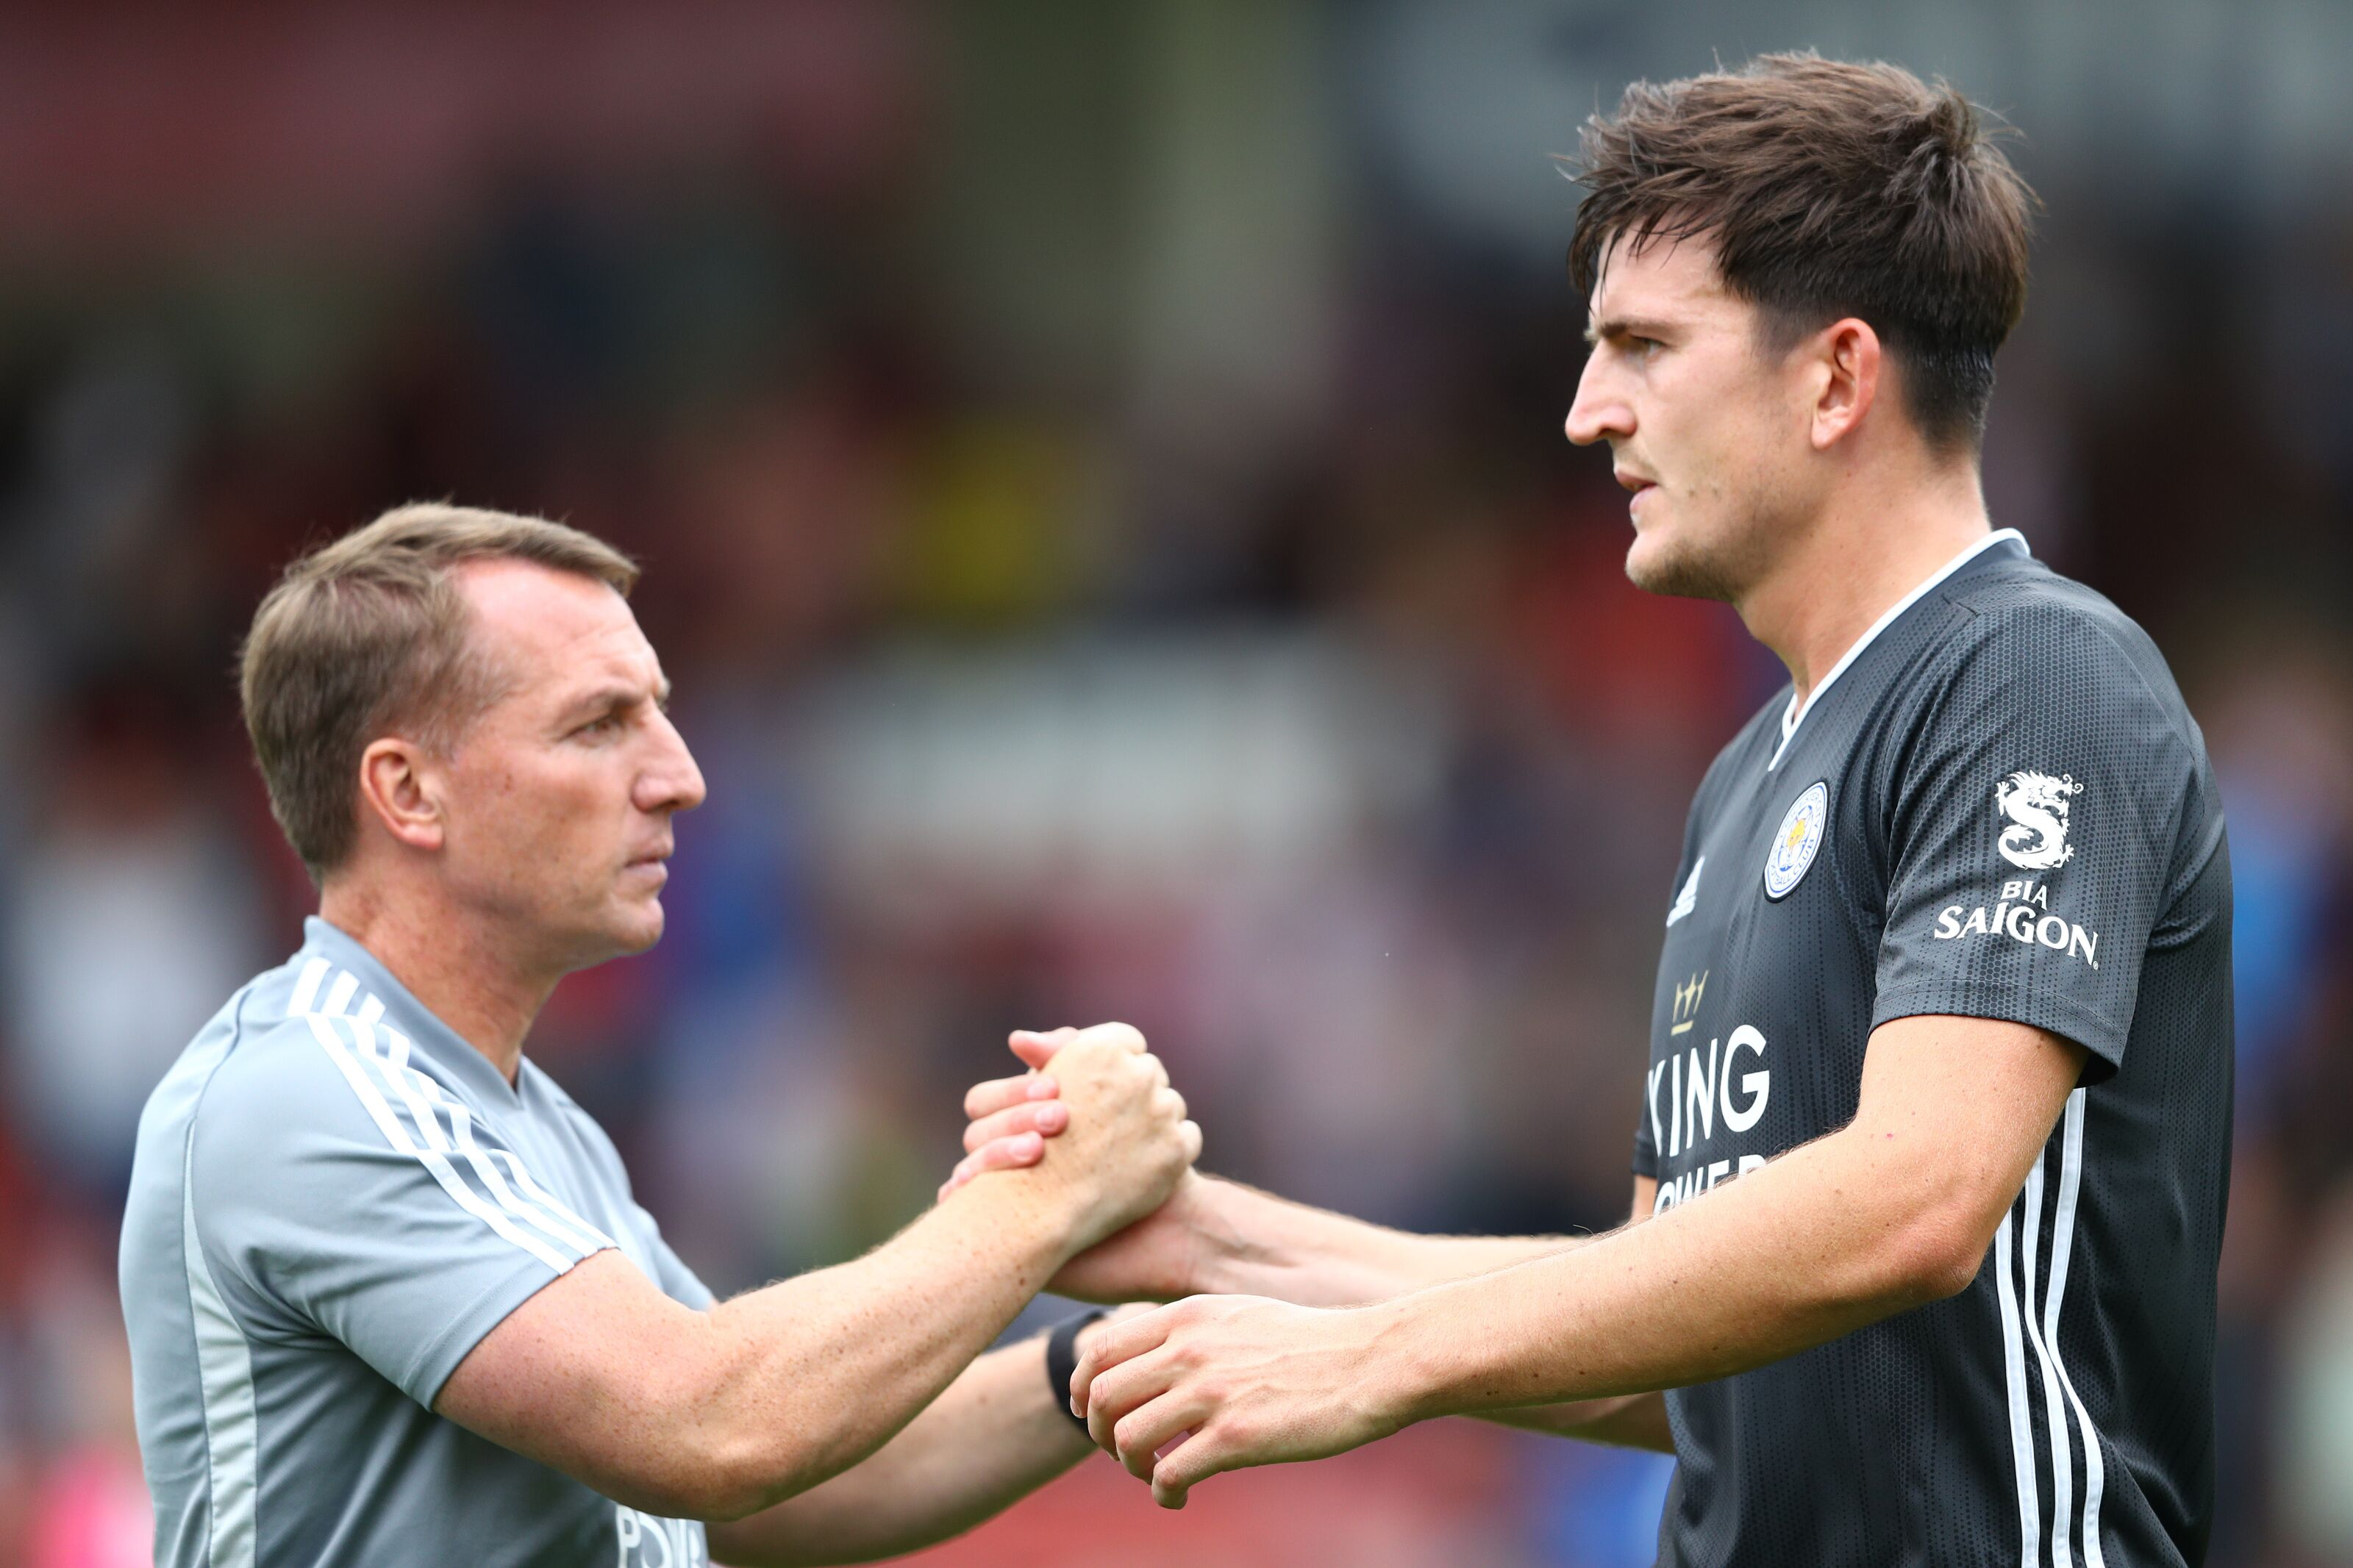 Leicester City boss on Harry Maguire: 'We don't want or have to sell – he fits'